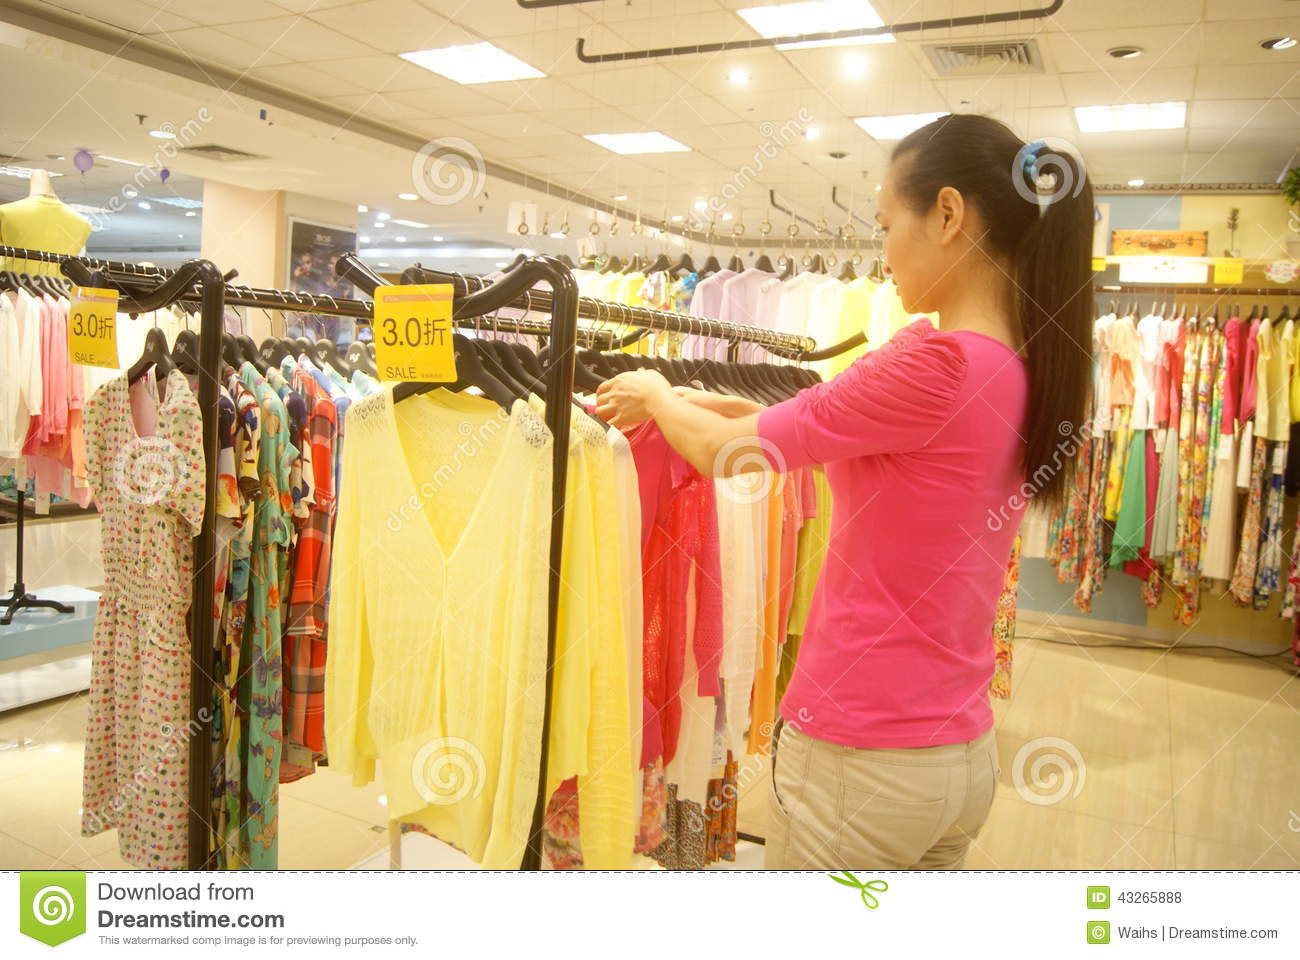 Clothing stores online :: China clothing stores